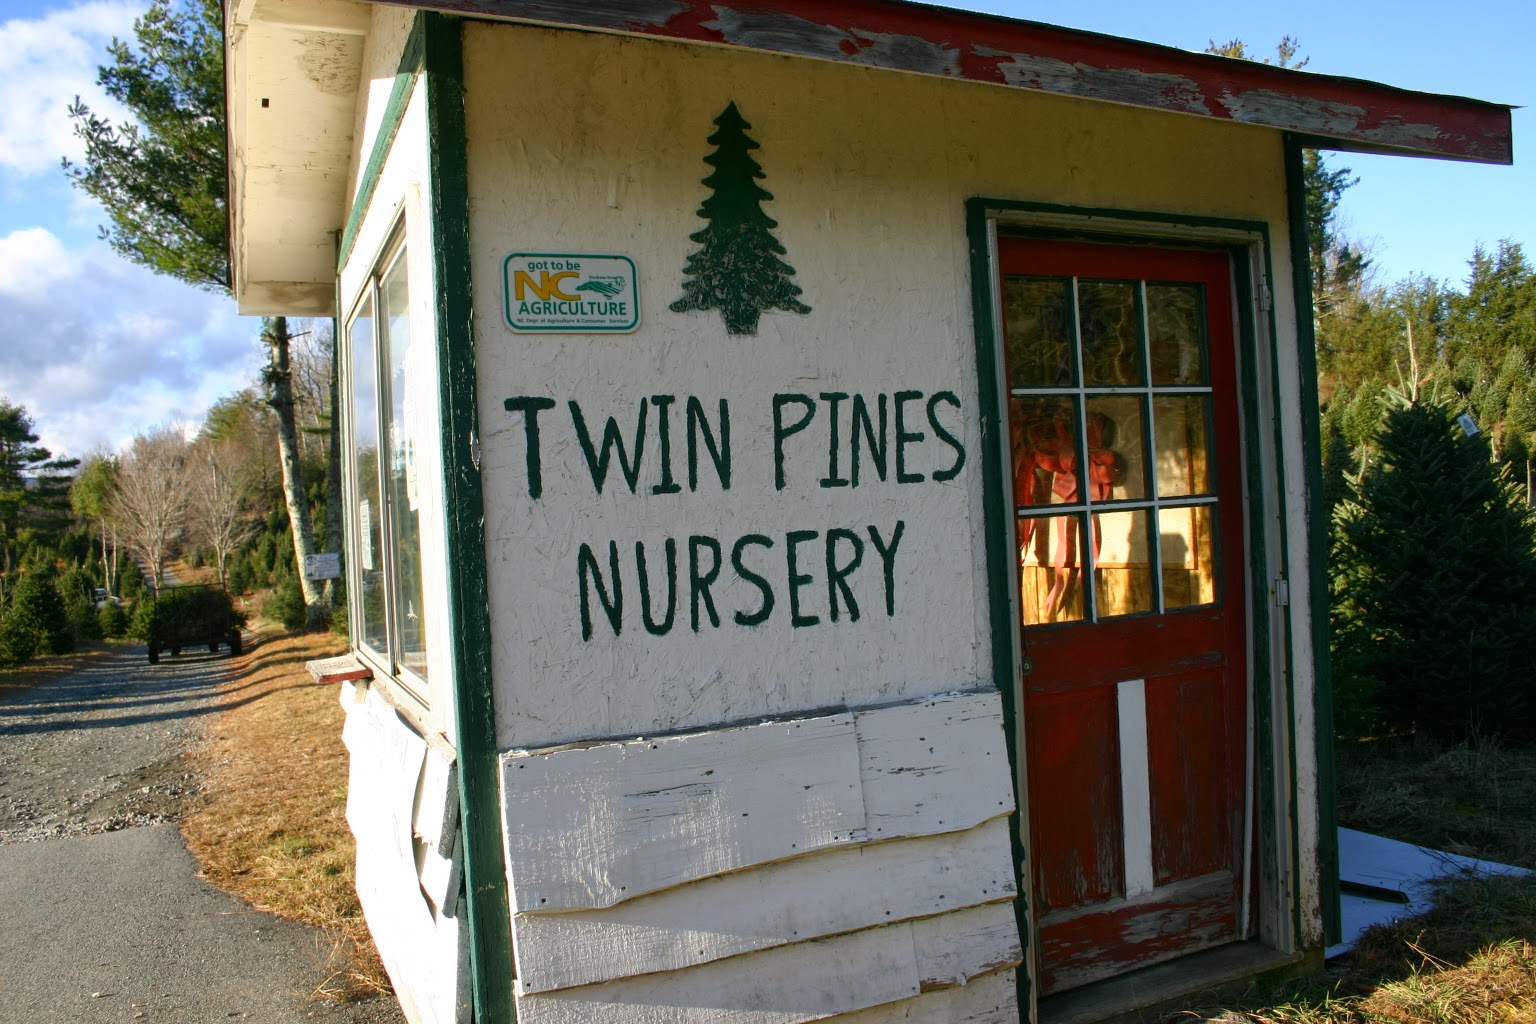 Starting My Senior Year Of College I Began The Tradition Traveling 4 Hours To Twin Pine Nursery Help Her Family Out On Christmas Tree Farm